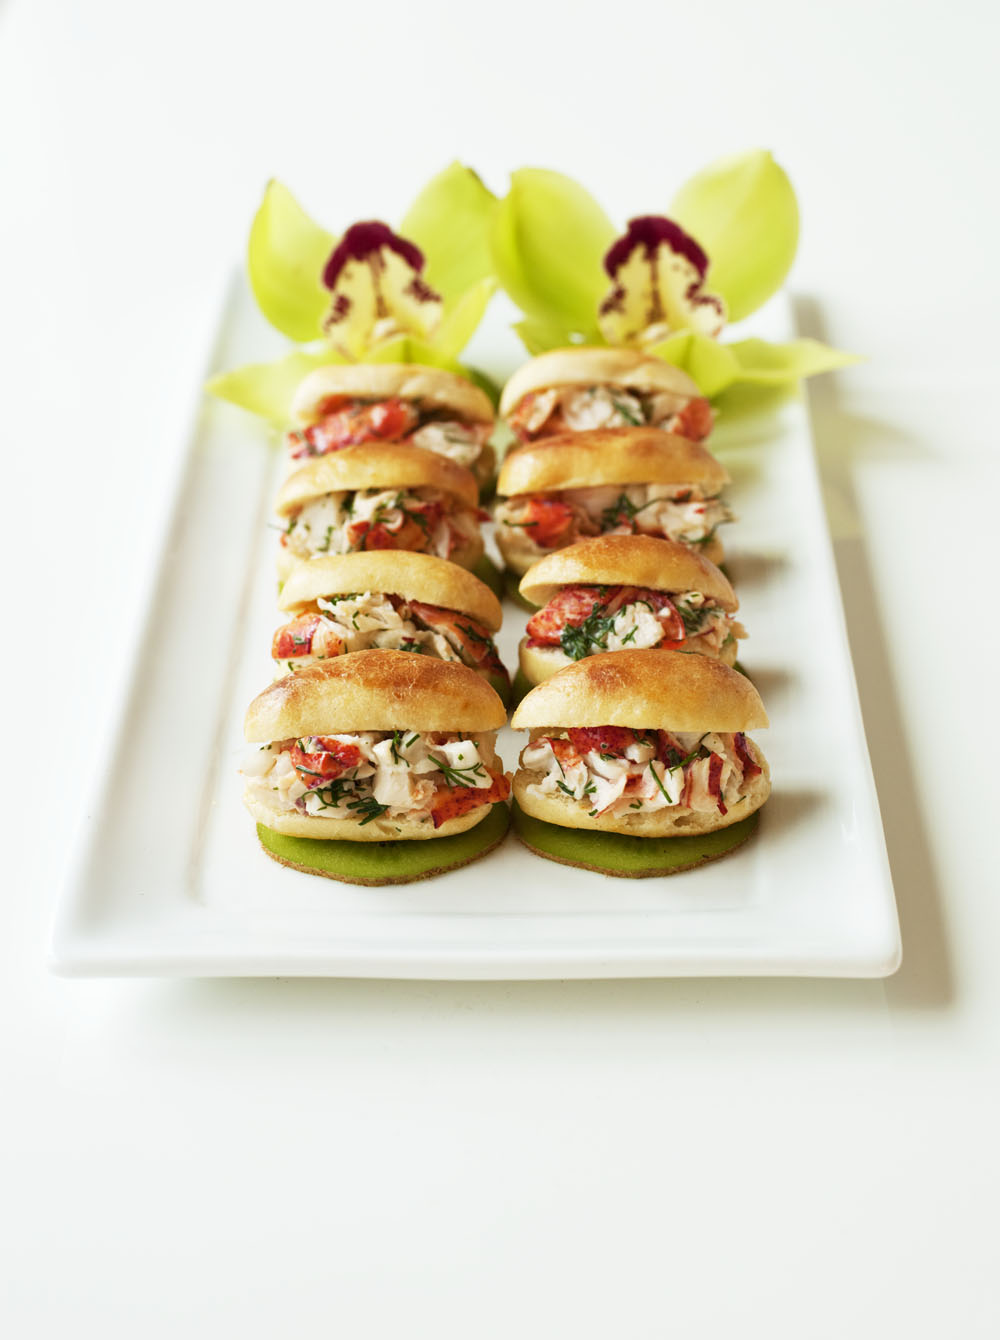 Lobster Roll.Our Brioche